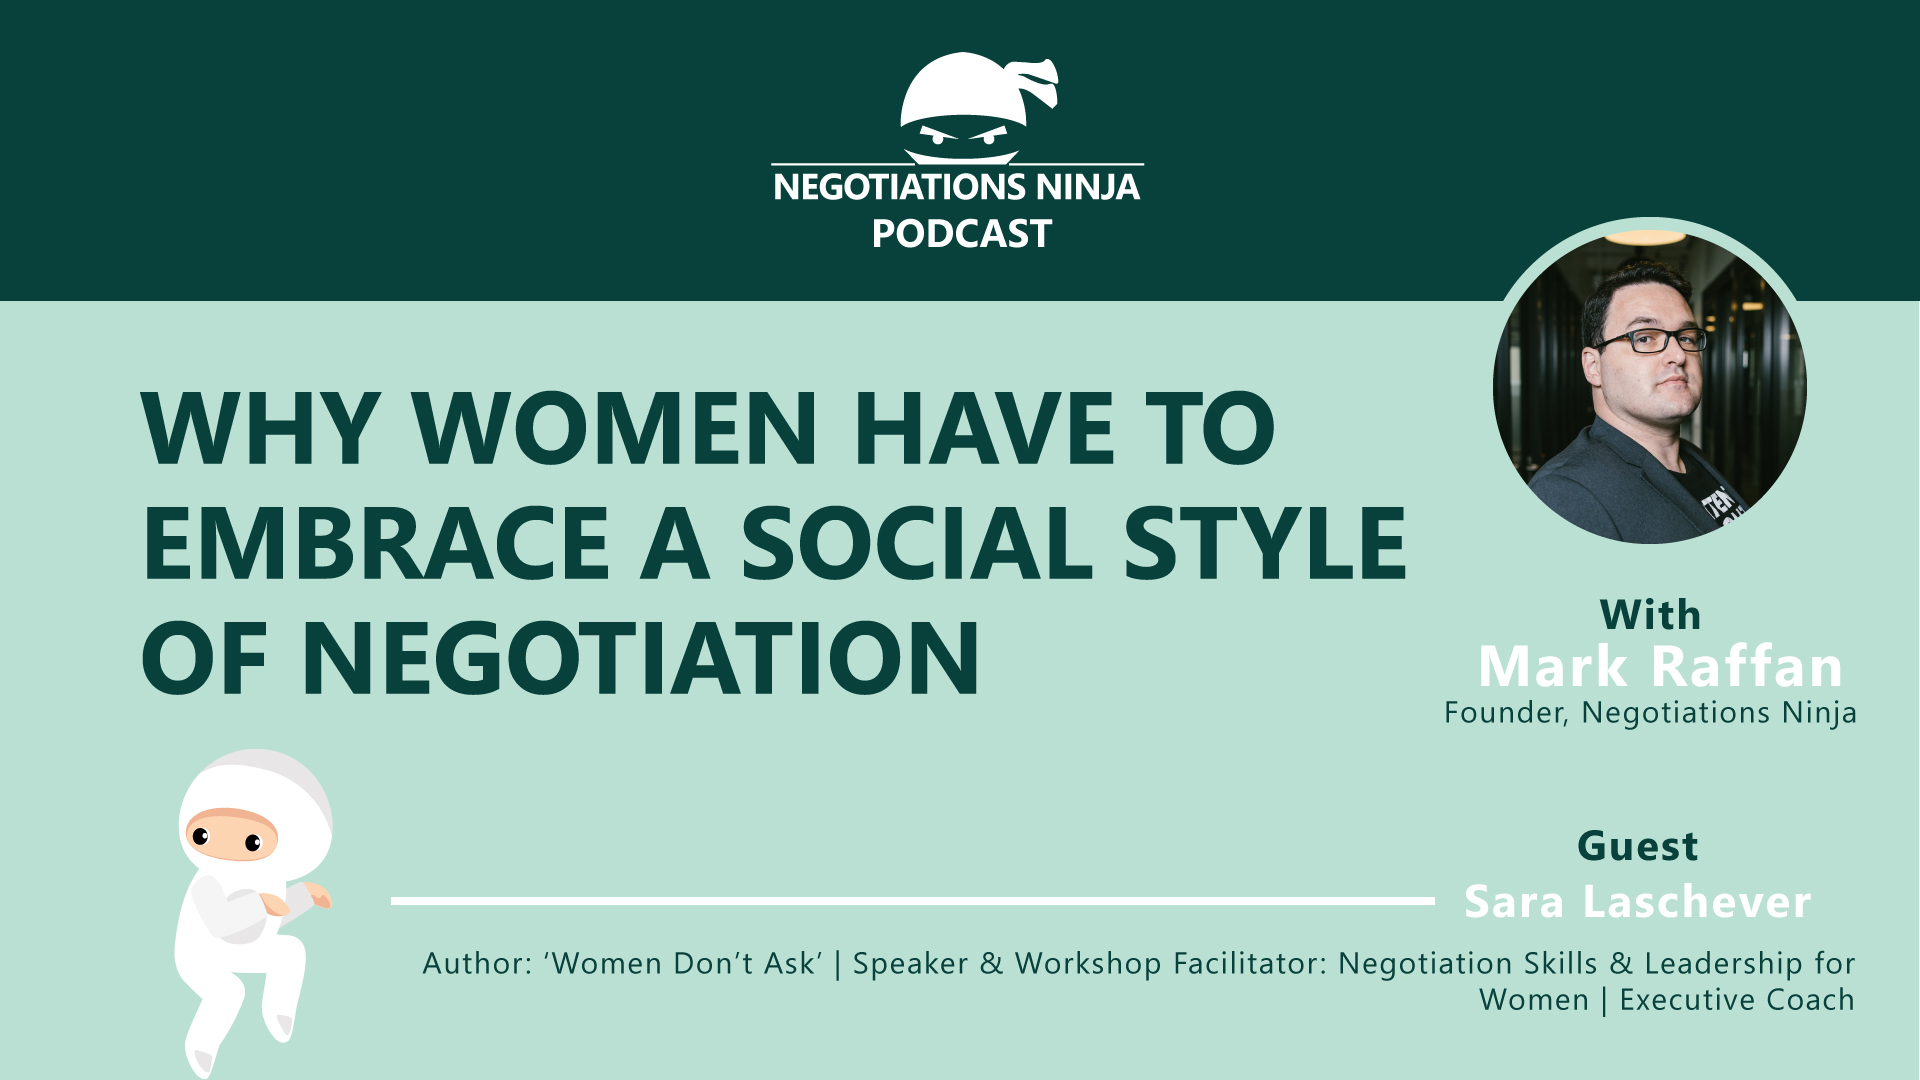 Why Women Have to Embrace Social Negotiation